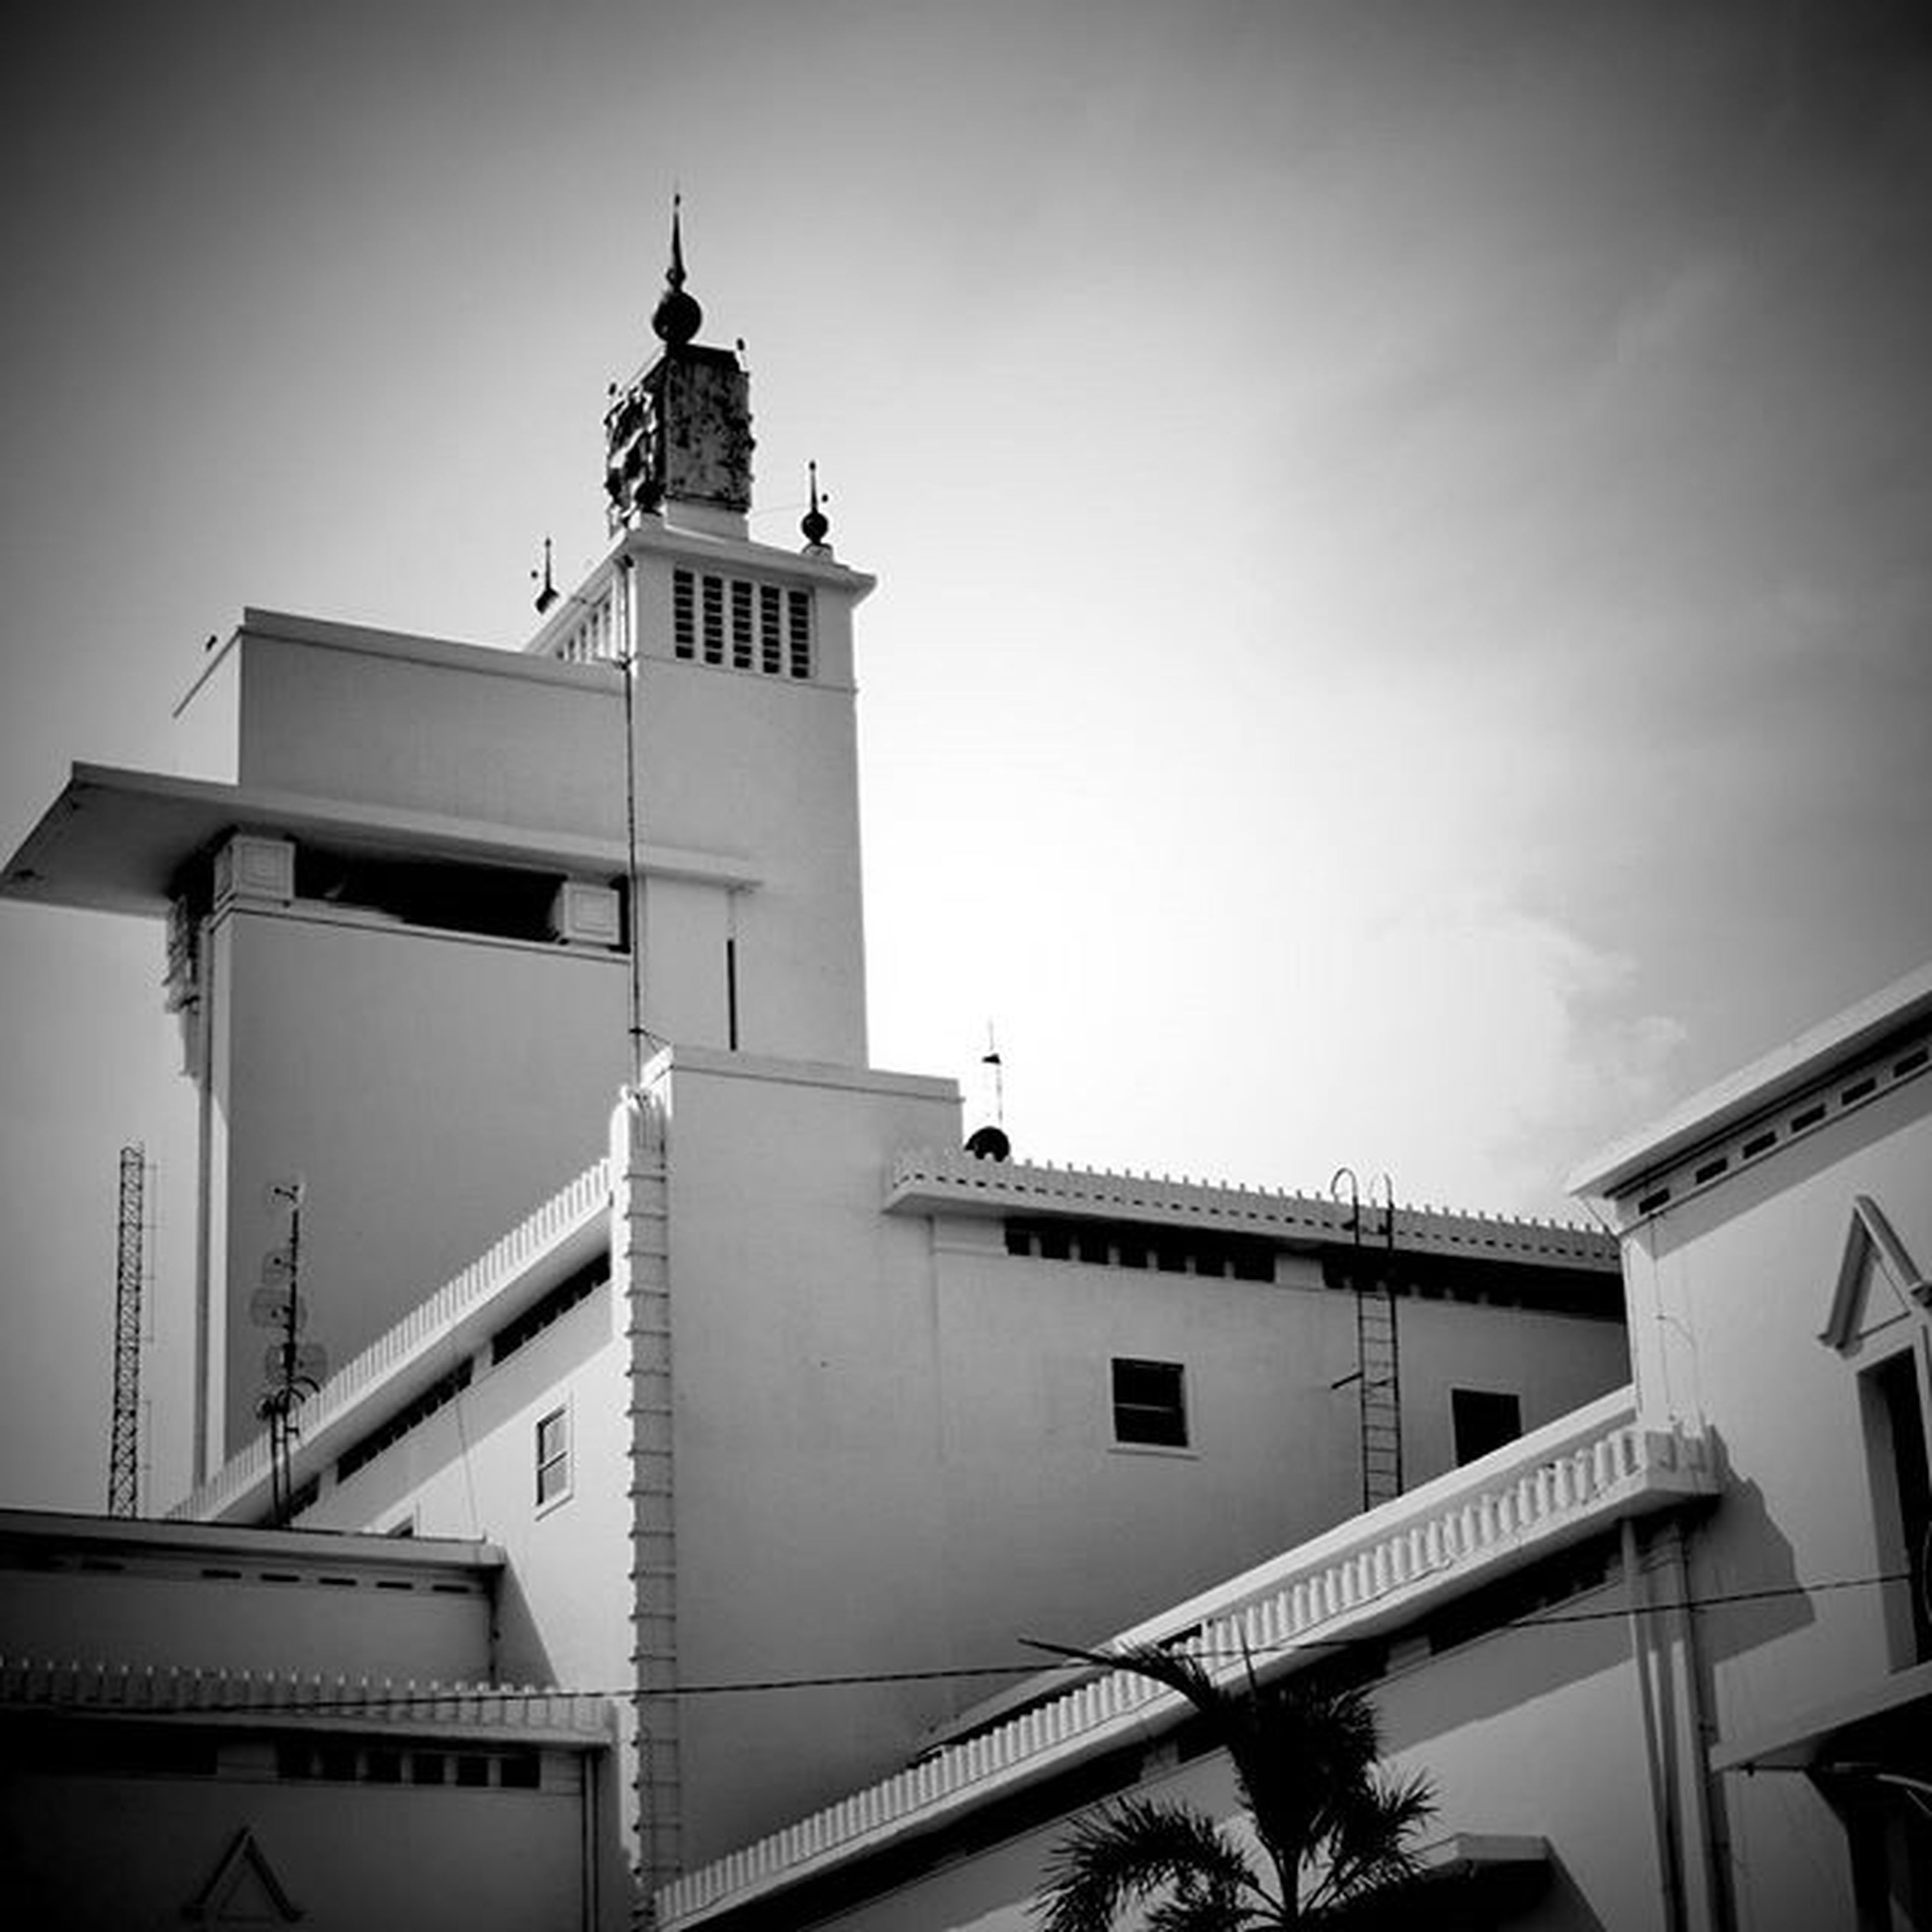 Based on the urban legend; that clock tower on top is heavily haunted. POTD Sunday Coloniallegacy Governorsoffice eastjava oldbuilding bw_indonesia nofilter blackandwhite blackandwhitephotography iamindonesia world_bnw bw_awards bnw_lombardia insta_bw bnw_planet ae_bnw nikonnofilter bnw_society bwstyles_gf bnw_diamond bnw_life ig_bw nikon rsa_bnw nikonindonesia bw_batavia blacknwhite_perfection princely_bw love_bnw